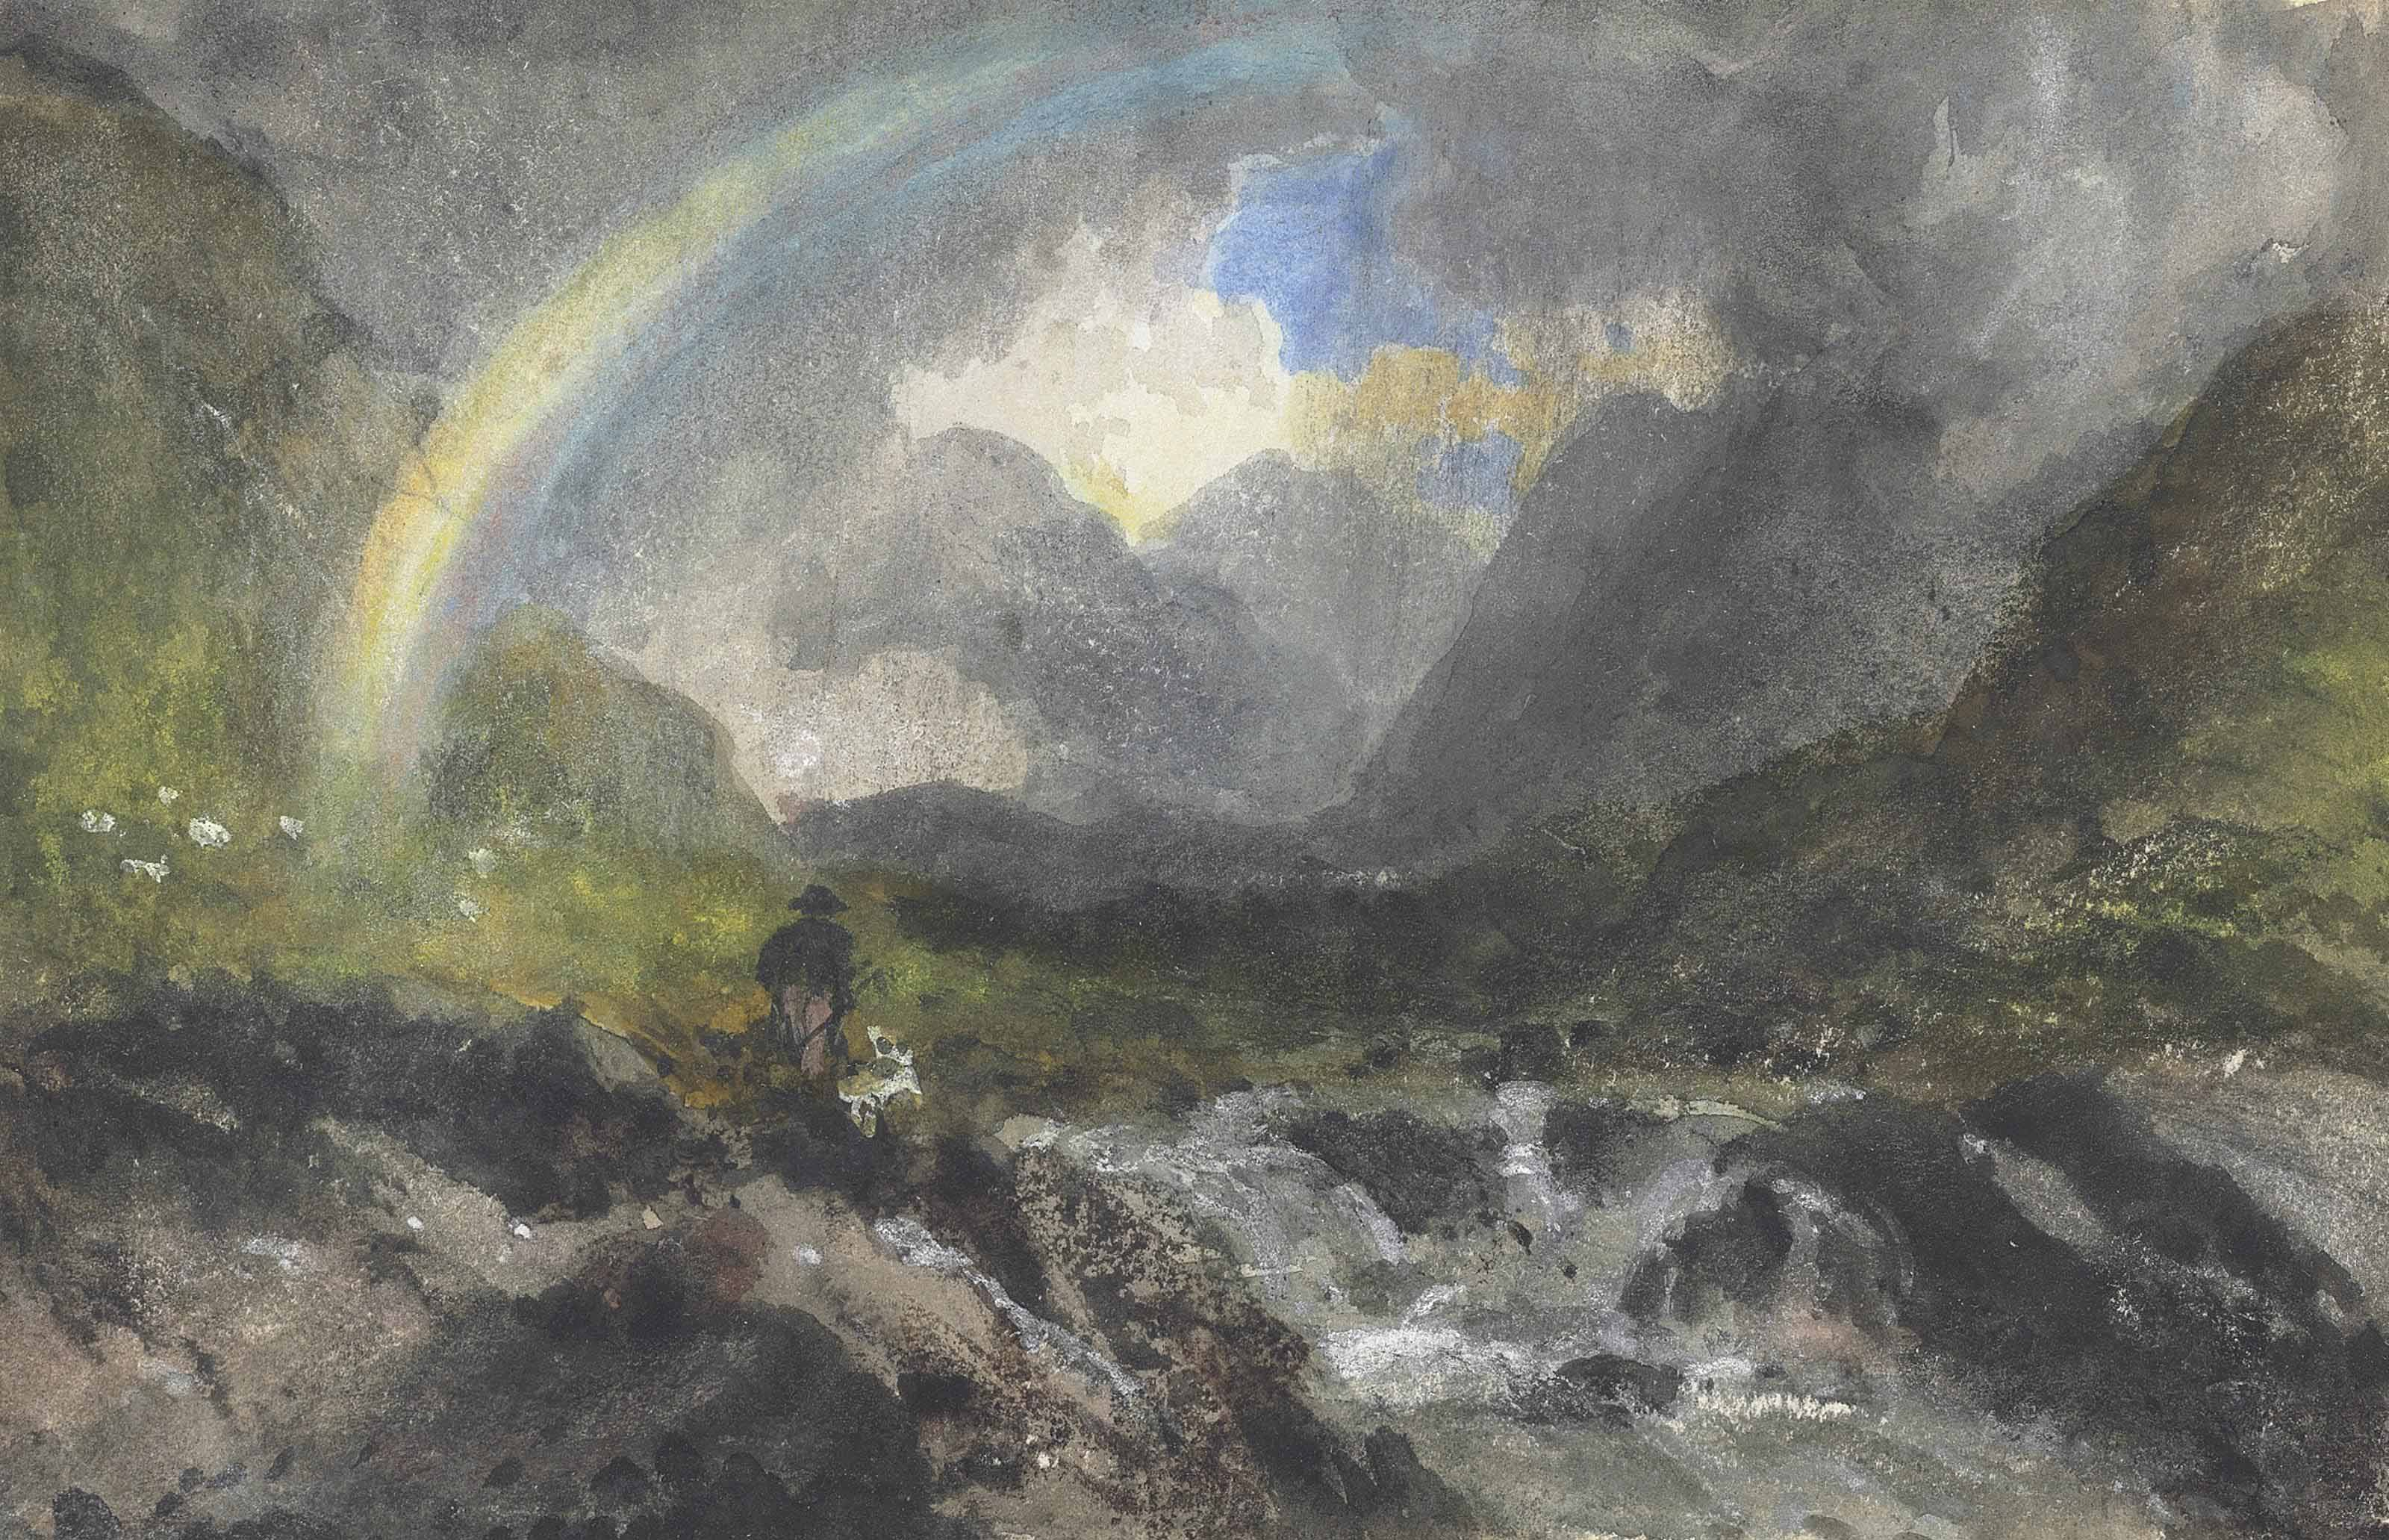 A mountainous river landscape with a rainbow